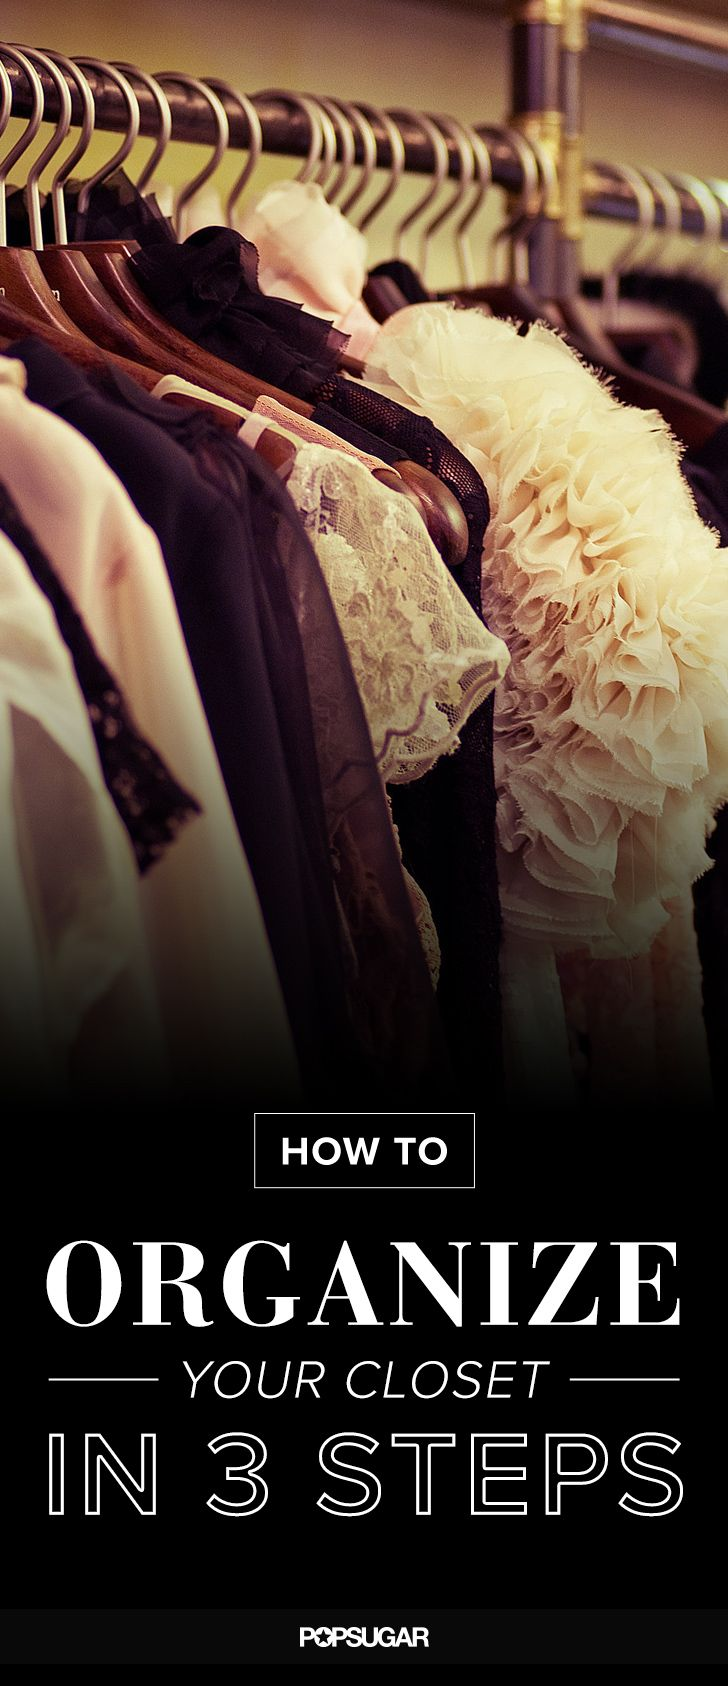 Your Closet Can Simplify Your Life The Art Of The Capsule: Organize Your Closet In 3 Easy Steps